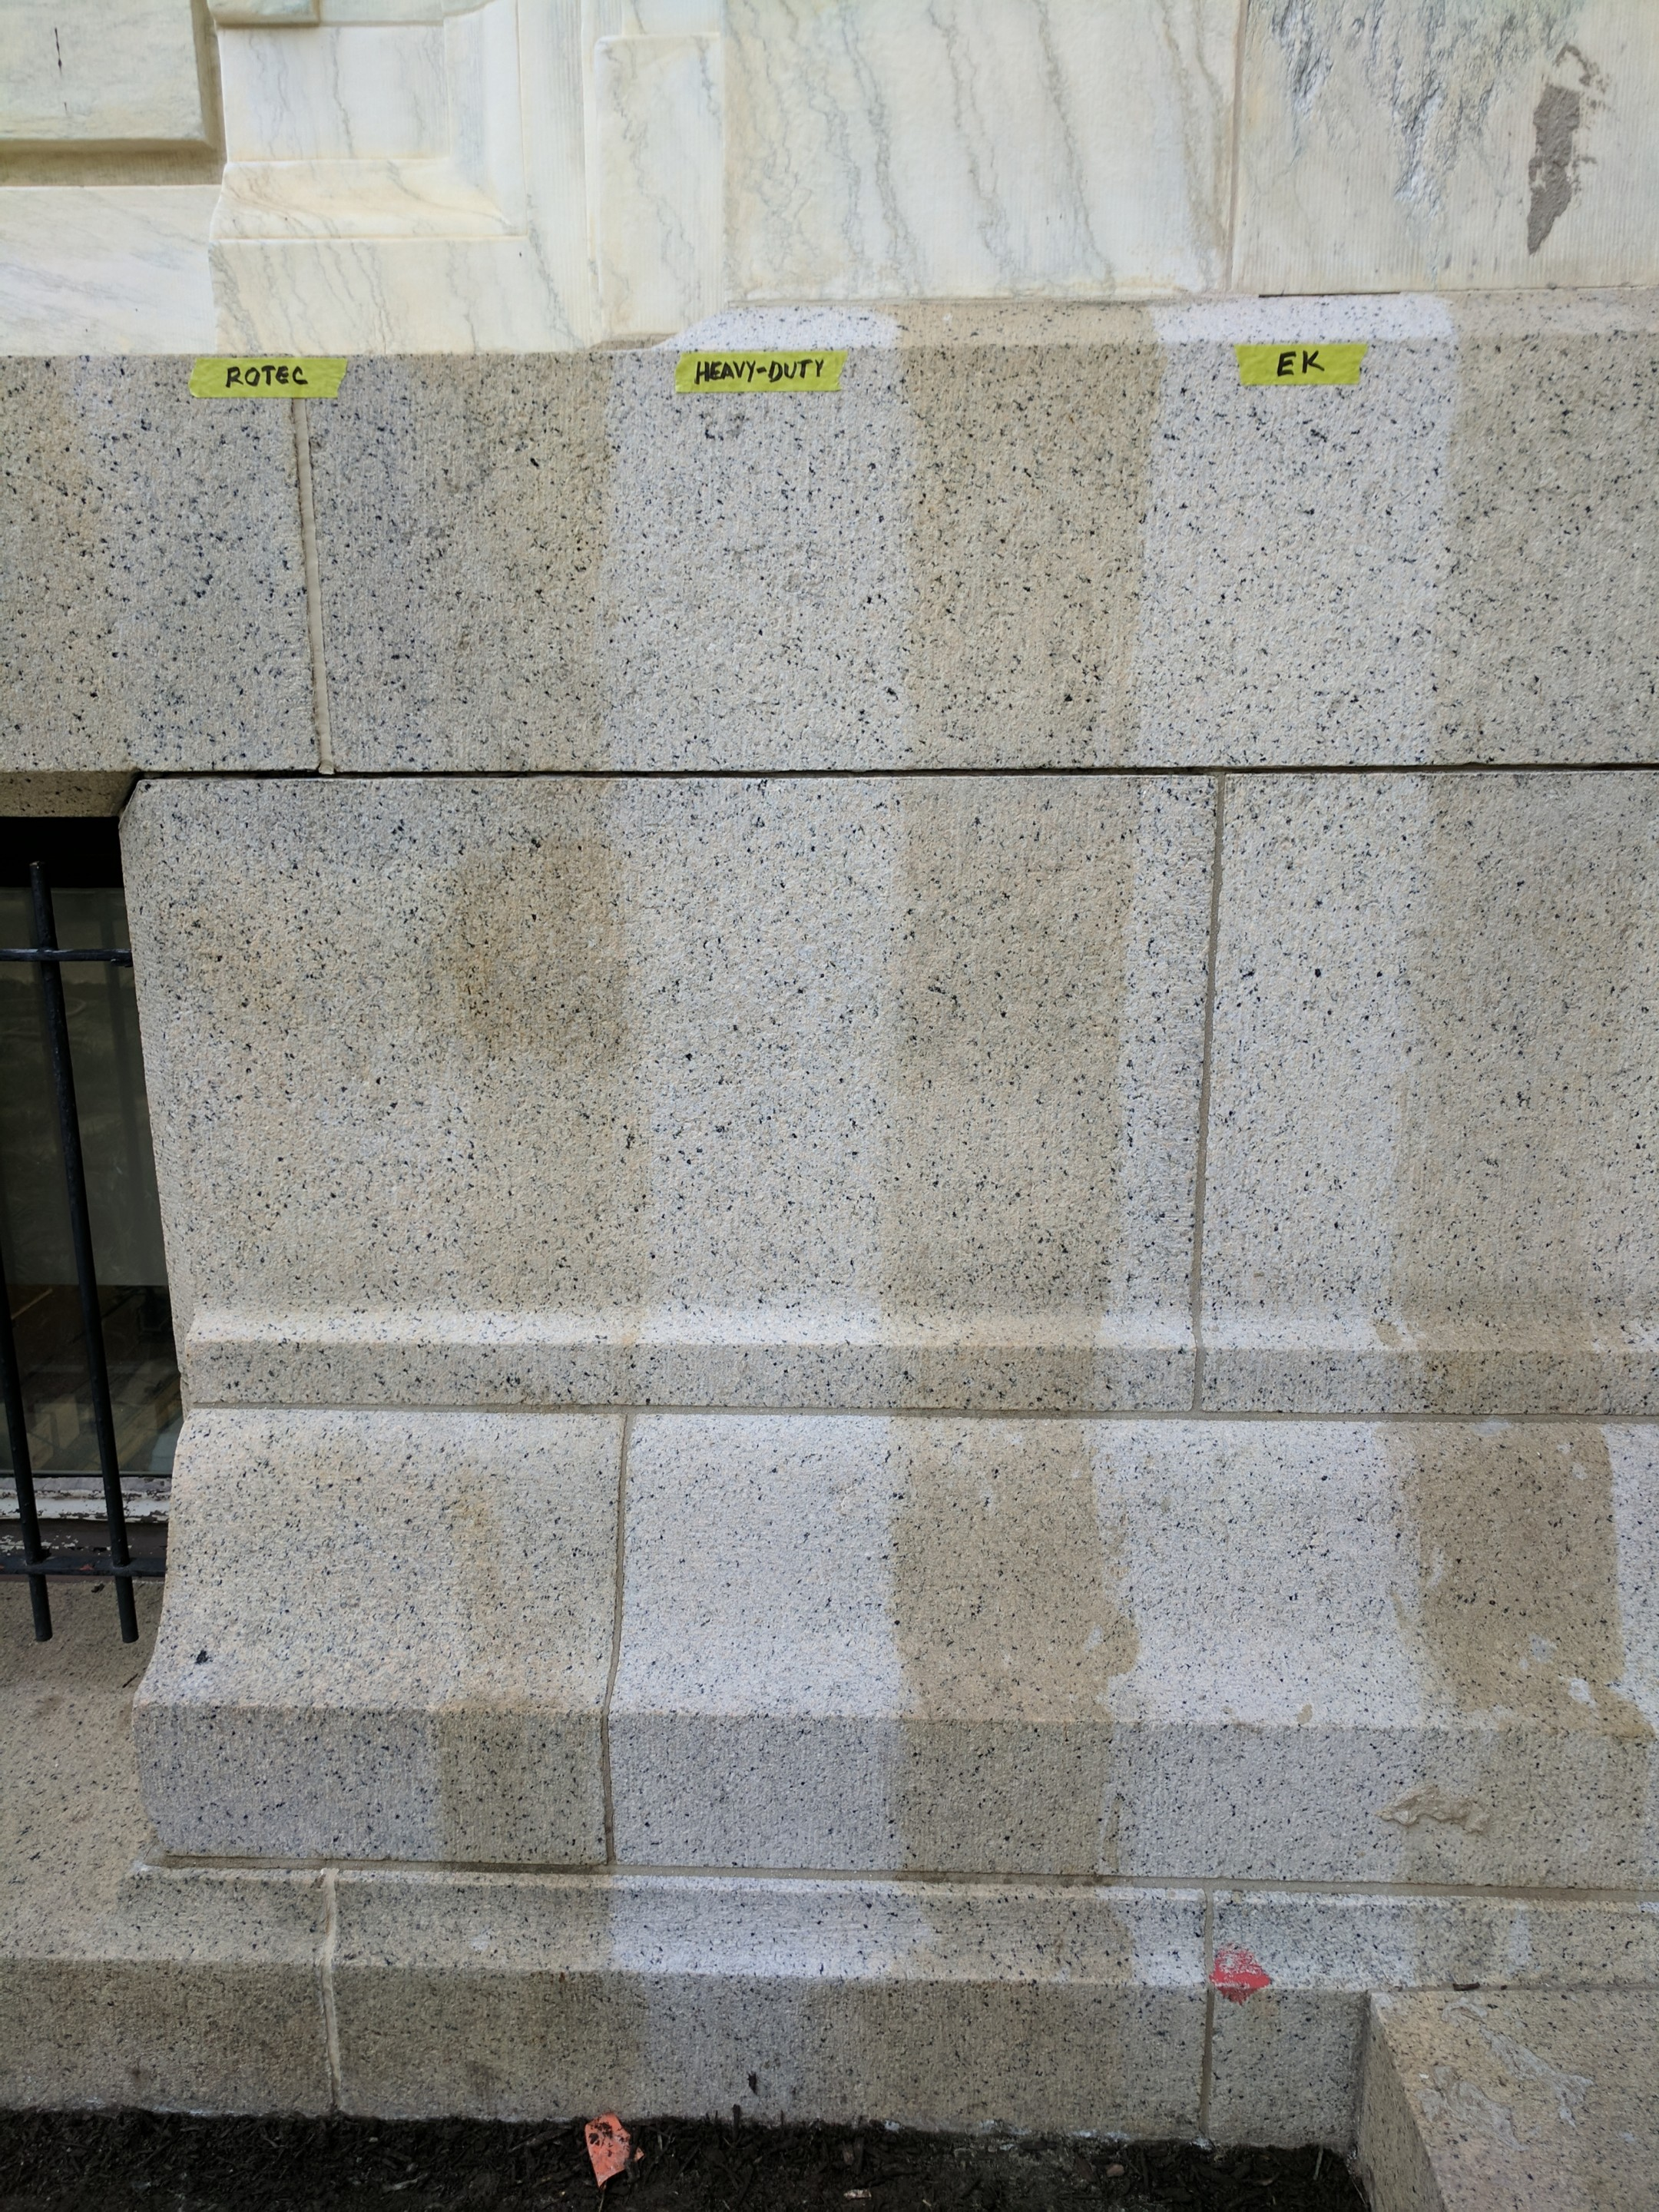 Image of cleaning tests on the masonry